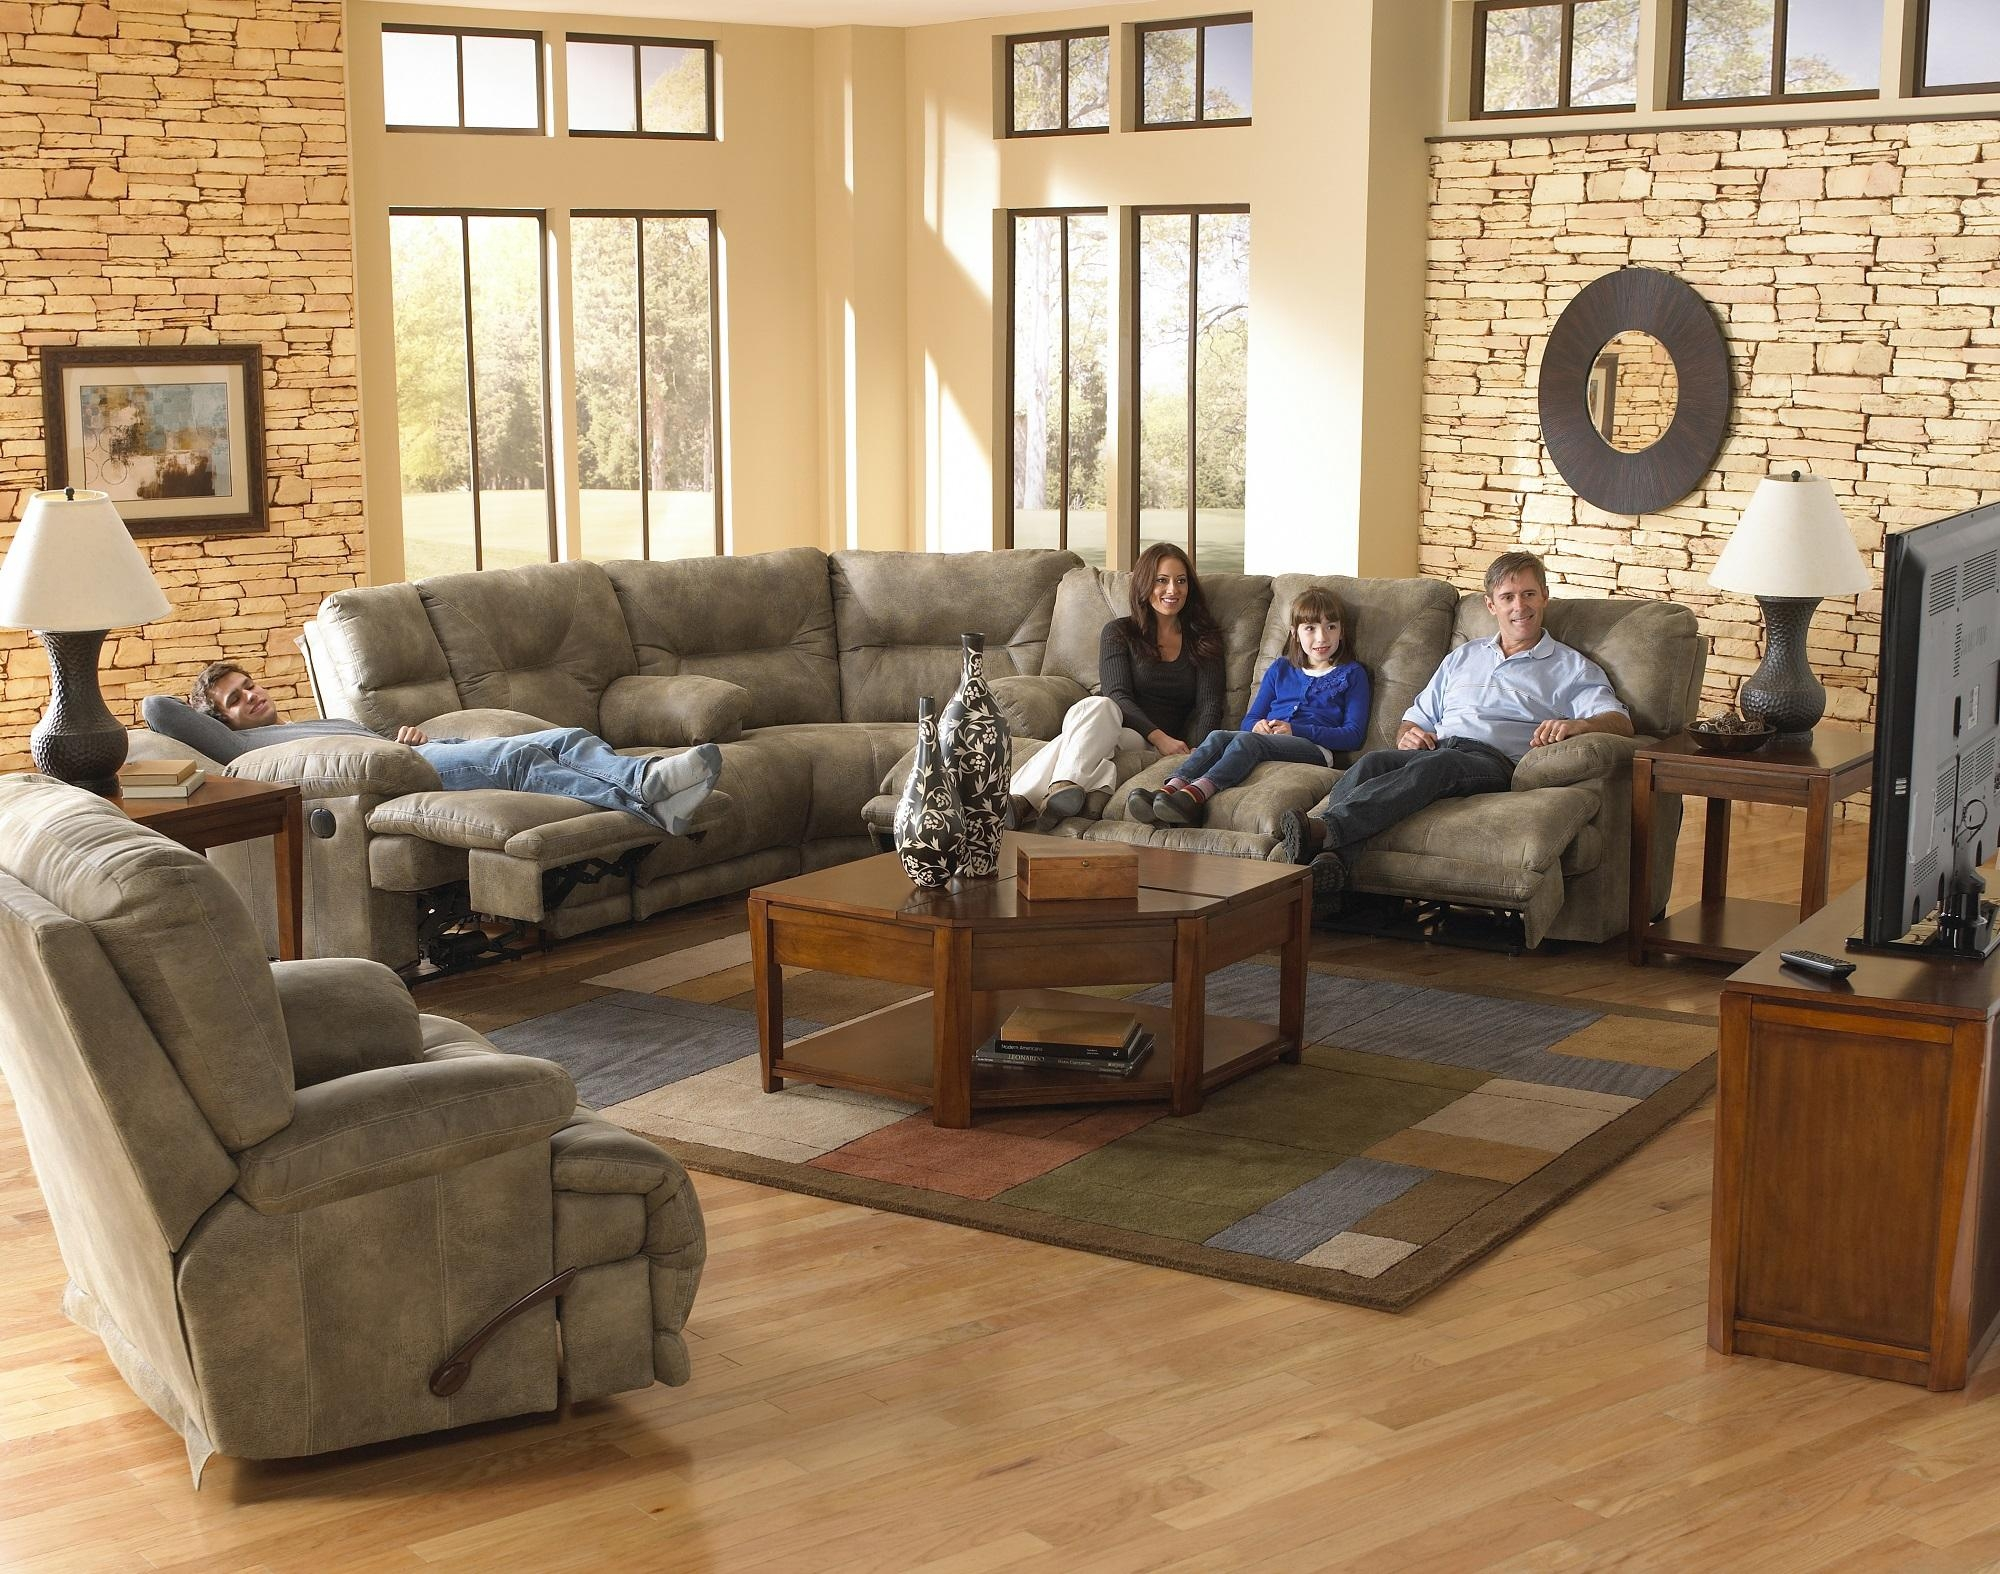 Voyager Power Reclining Sectional Sofacatnapper In Catnapper Recliner Sofas (Image 19 of 20)